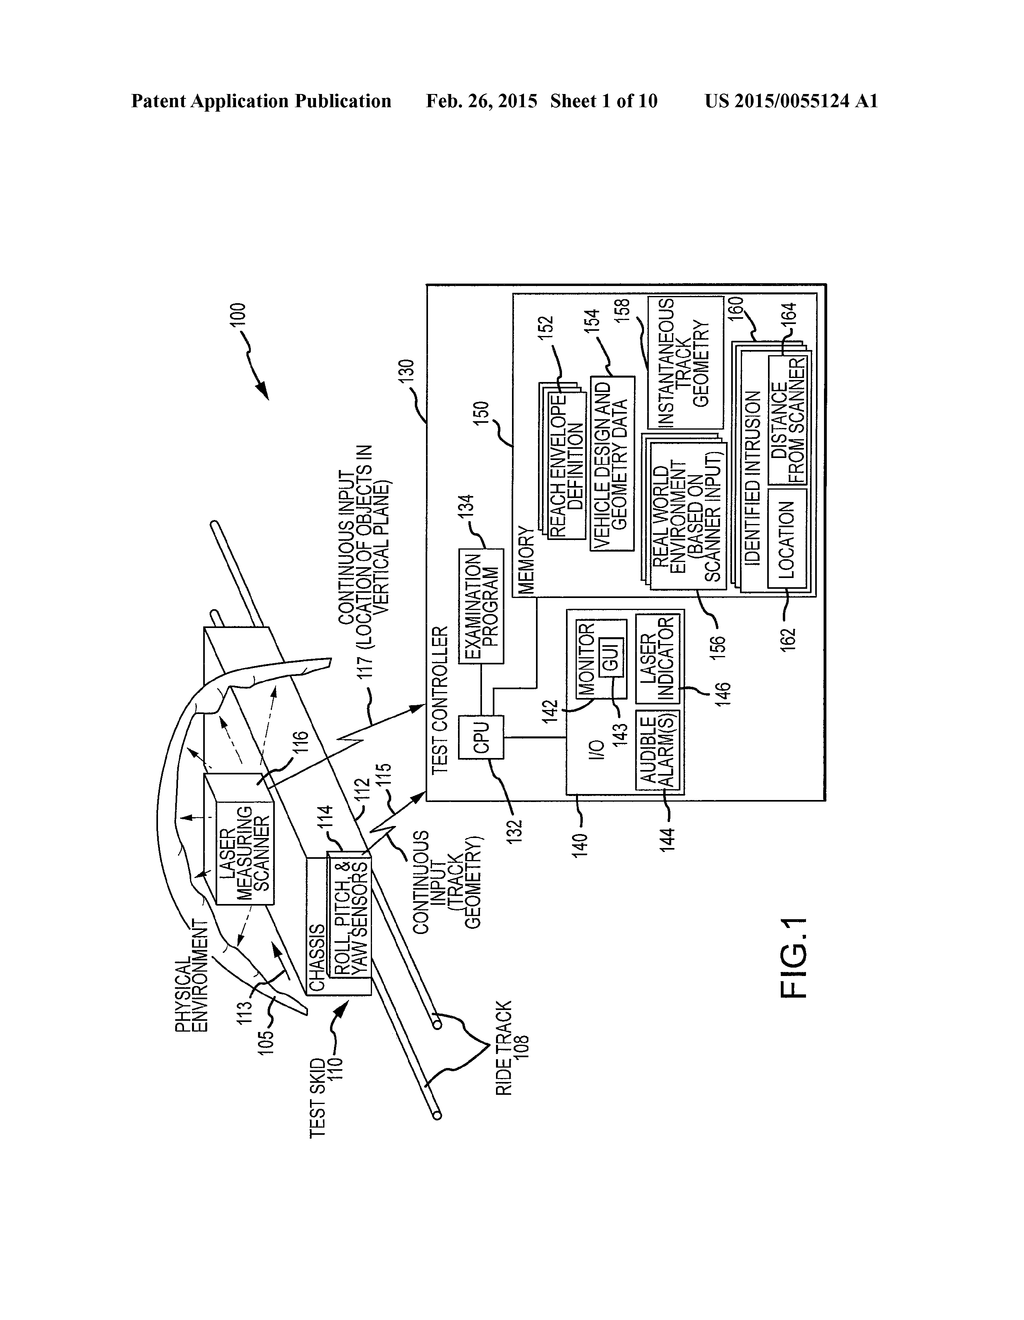 hight resolution of electronic reach envelope intrusion examiner diagram schematic and image 02